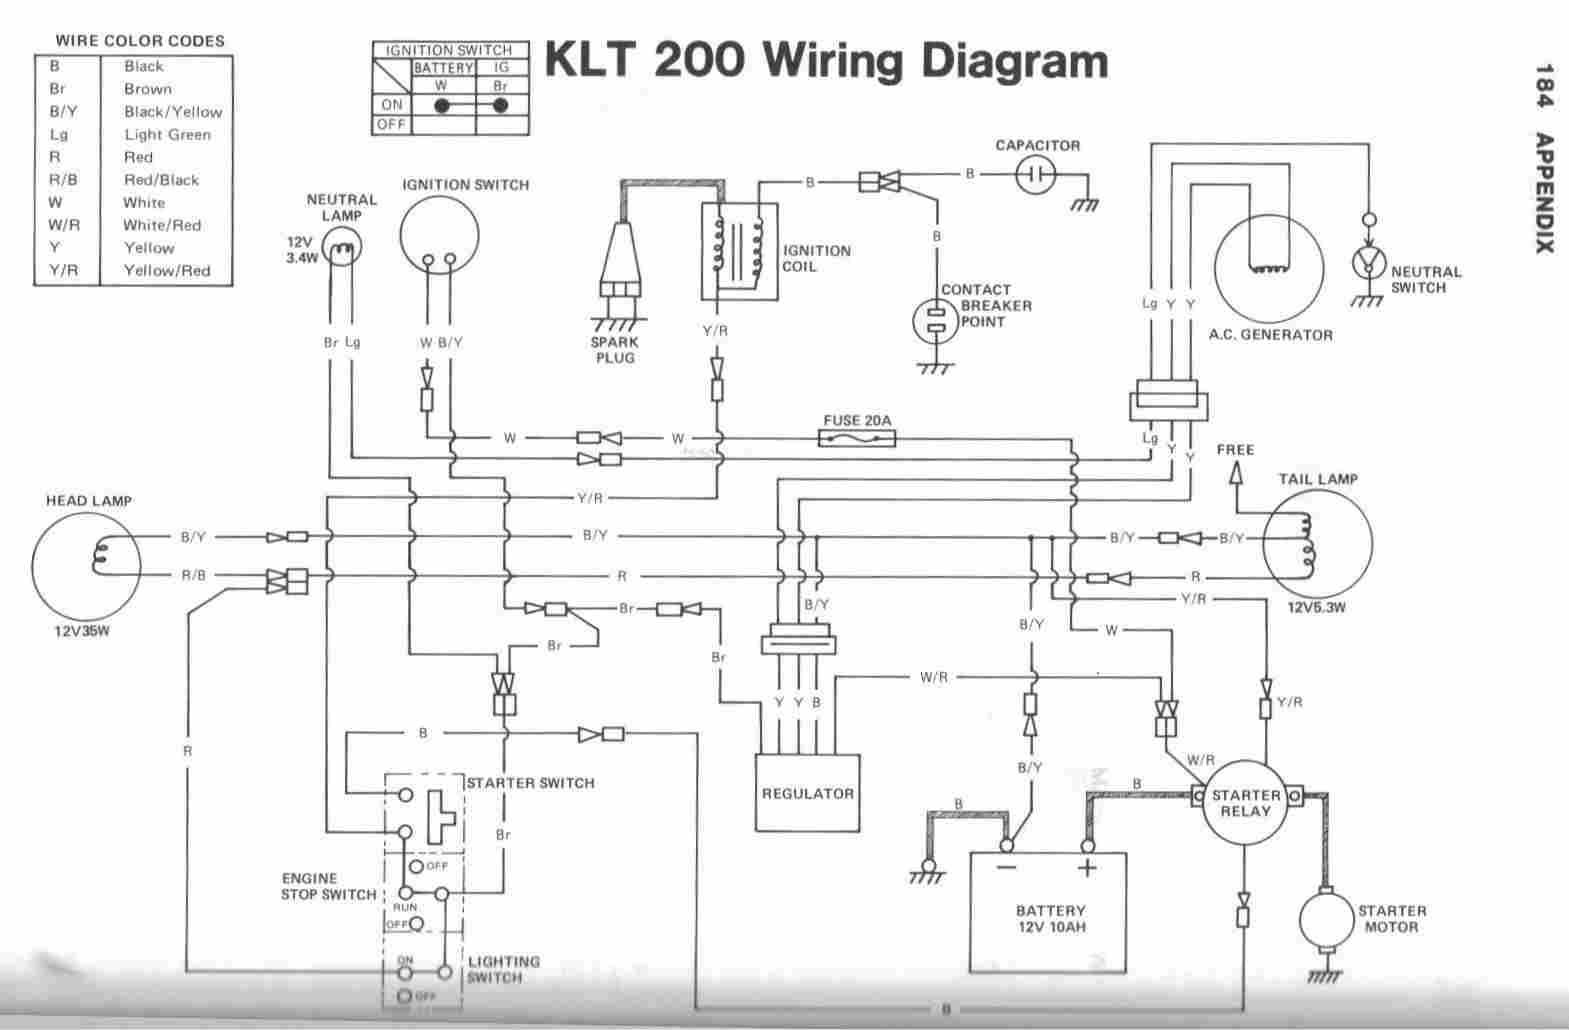 residential electrical wiring diagrams pdf easy routing Basic Electrical Wiring Diagrams